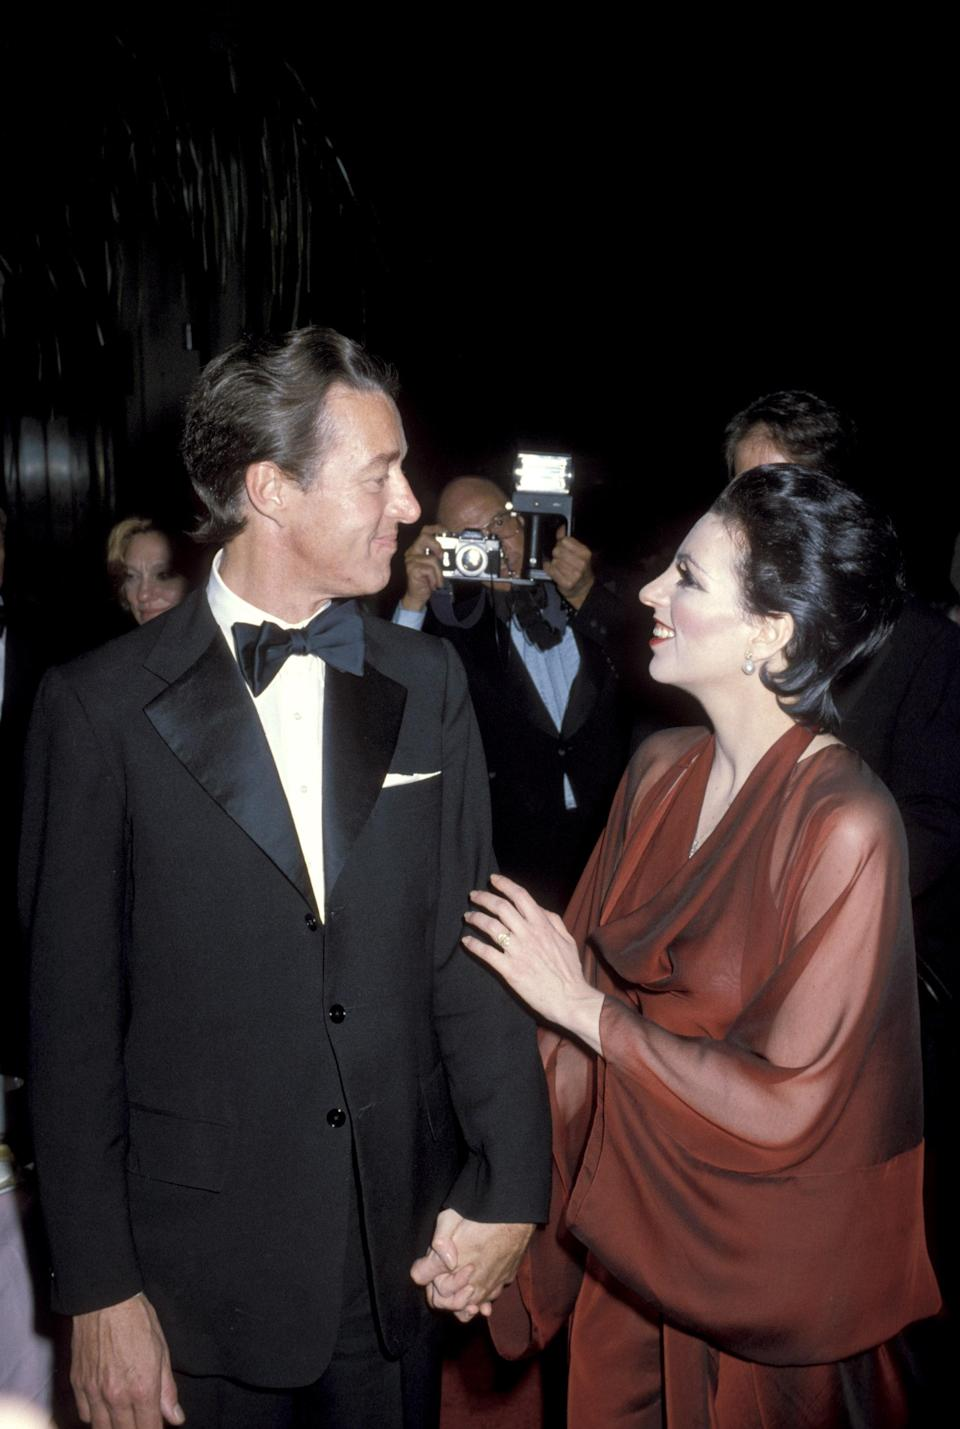 Halston and Minnelli attend the Martha Graham Benefit at the Metropolitan Opera House, 26 June 1978